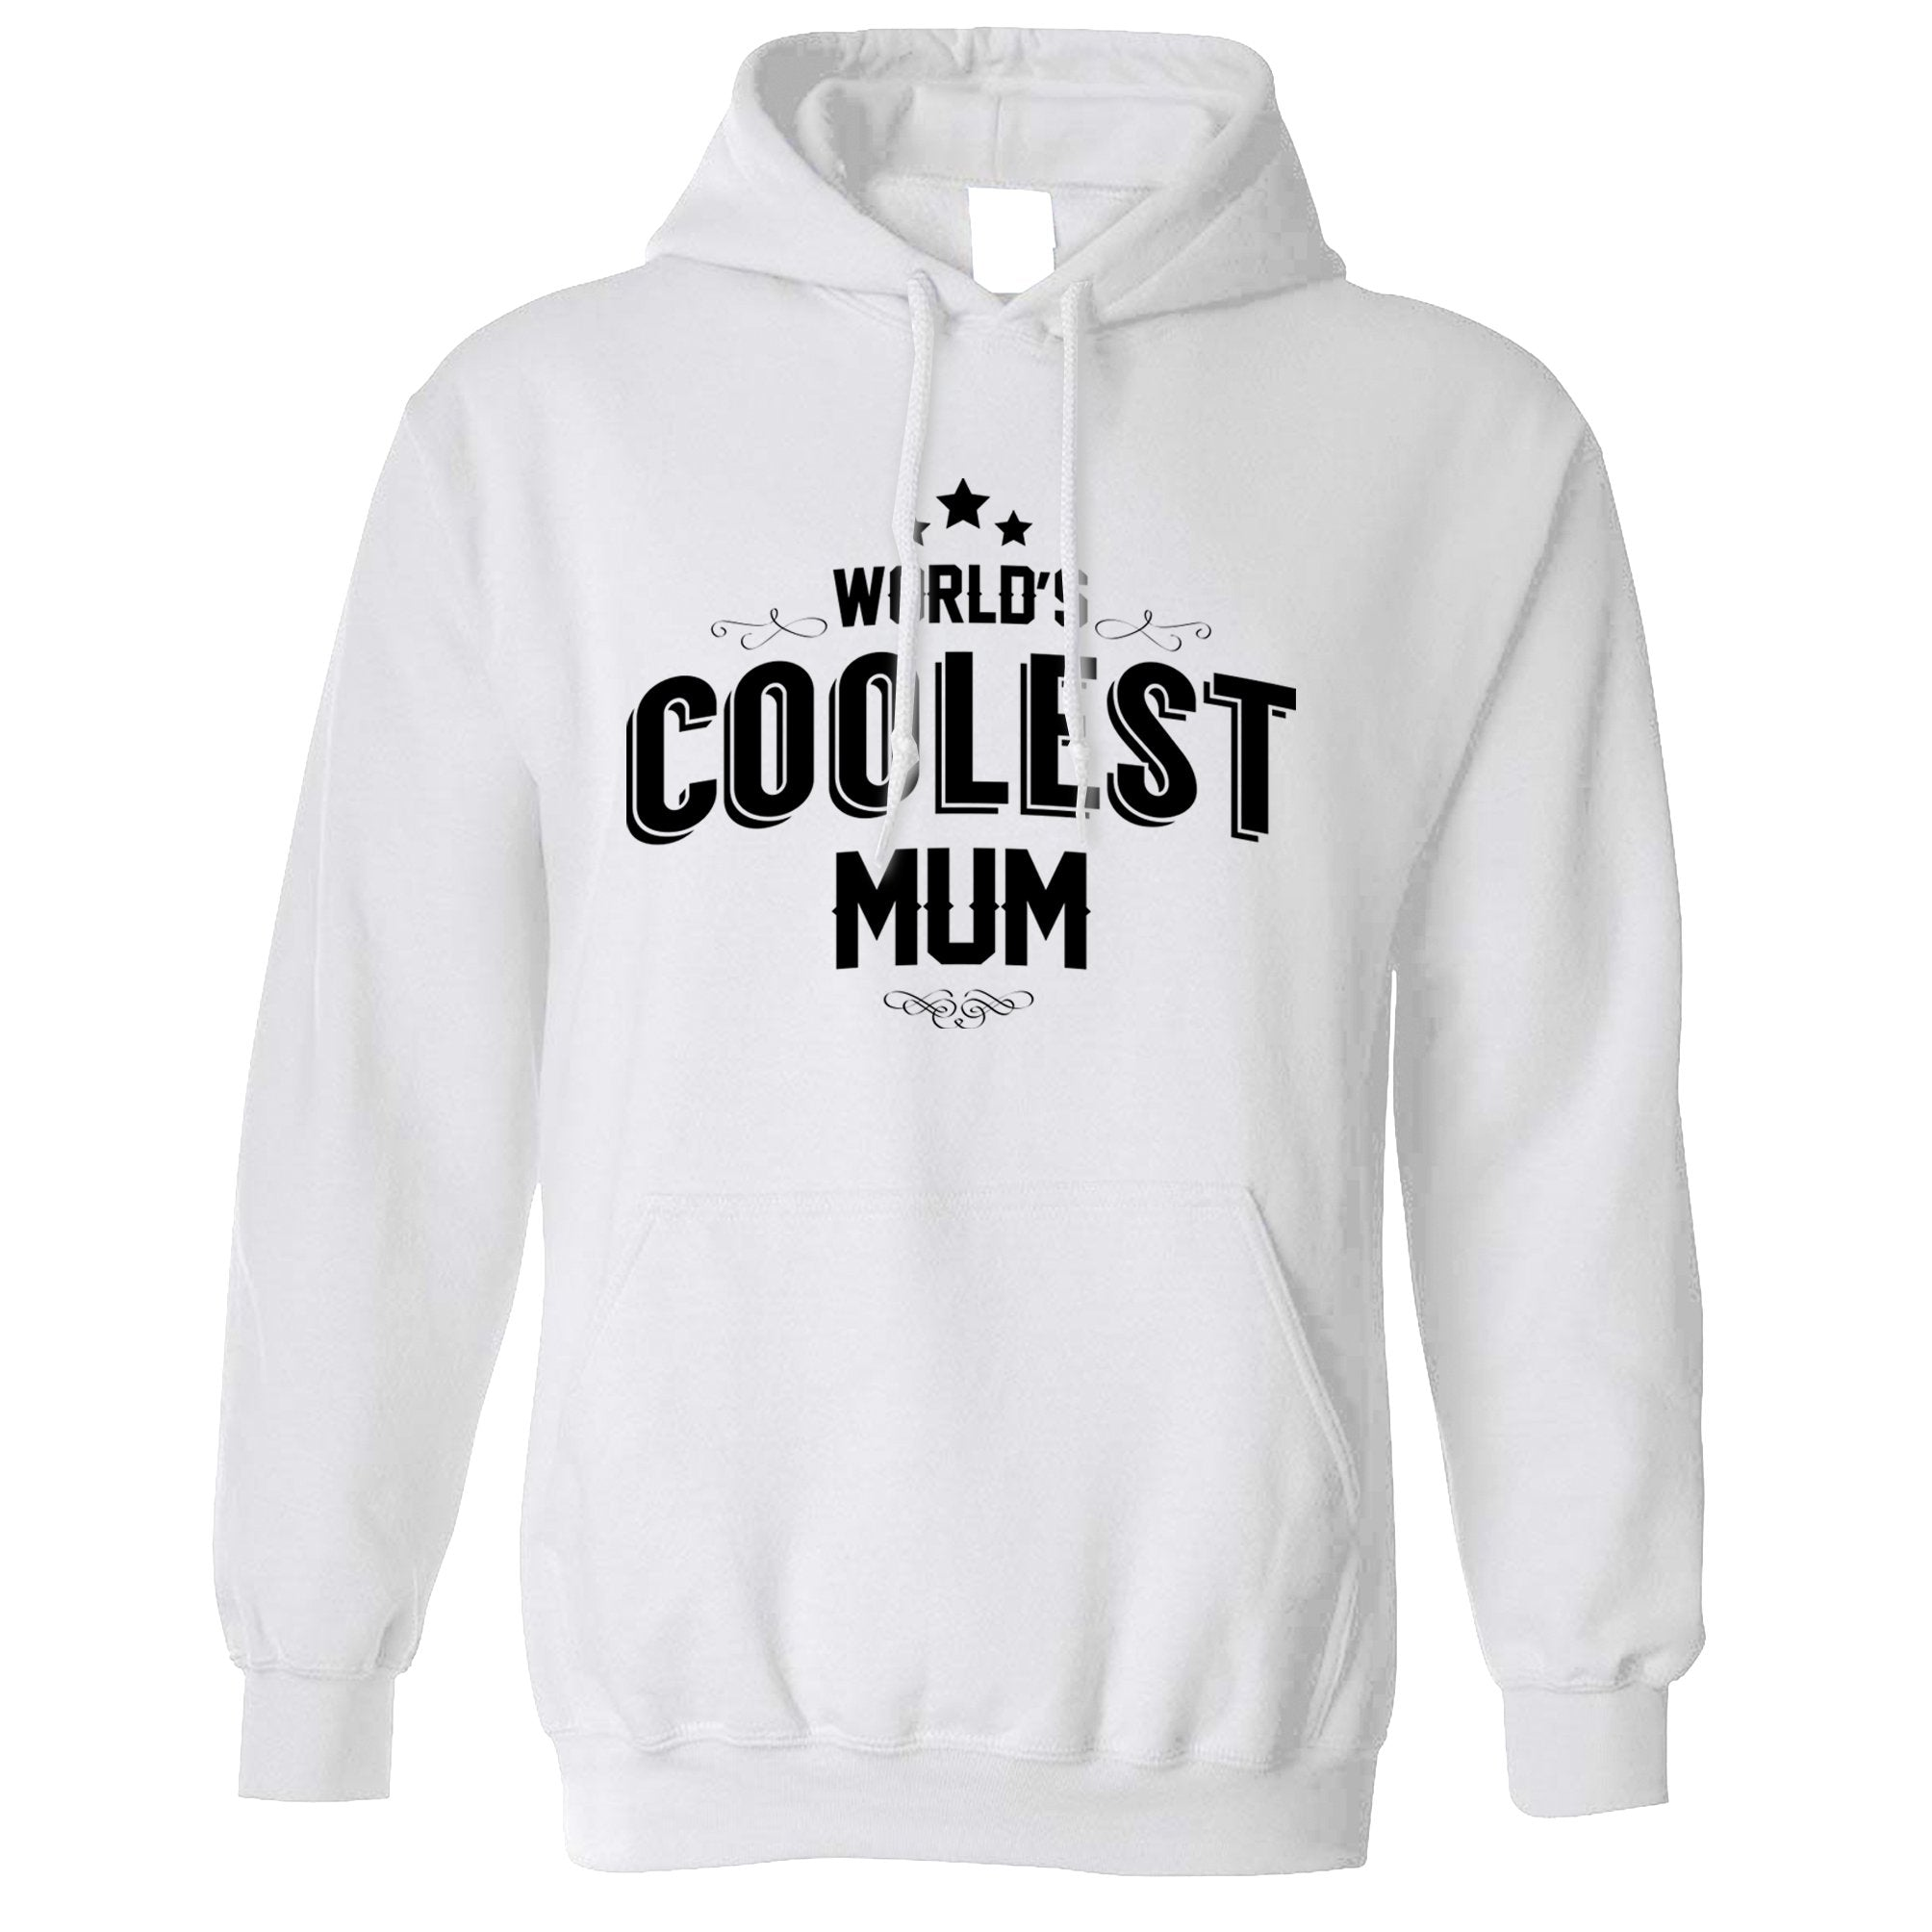 Novelty Hoodie Worlds Coolest Mum Slogan Hooded Jumper